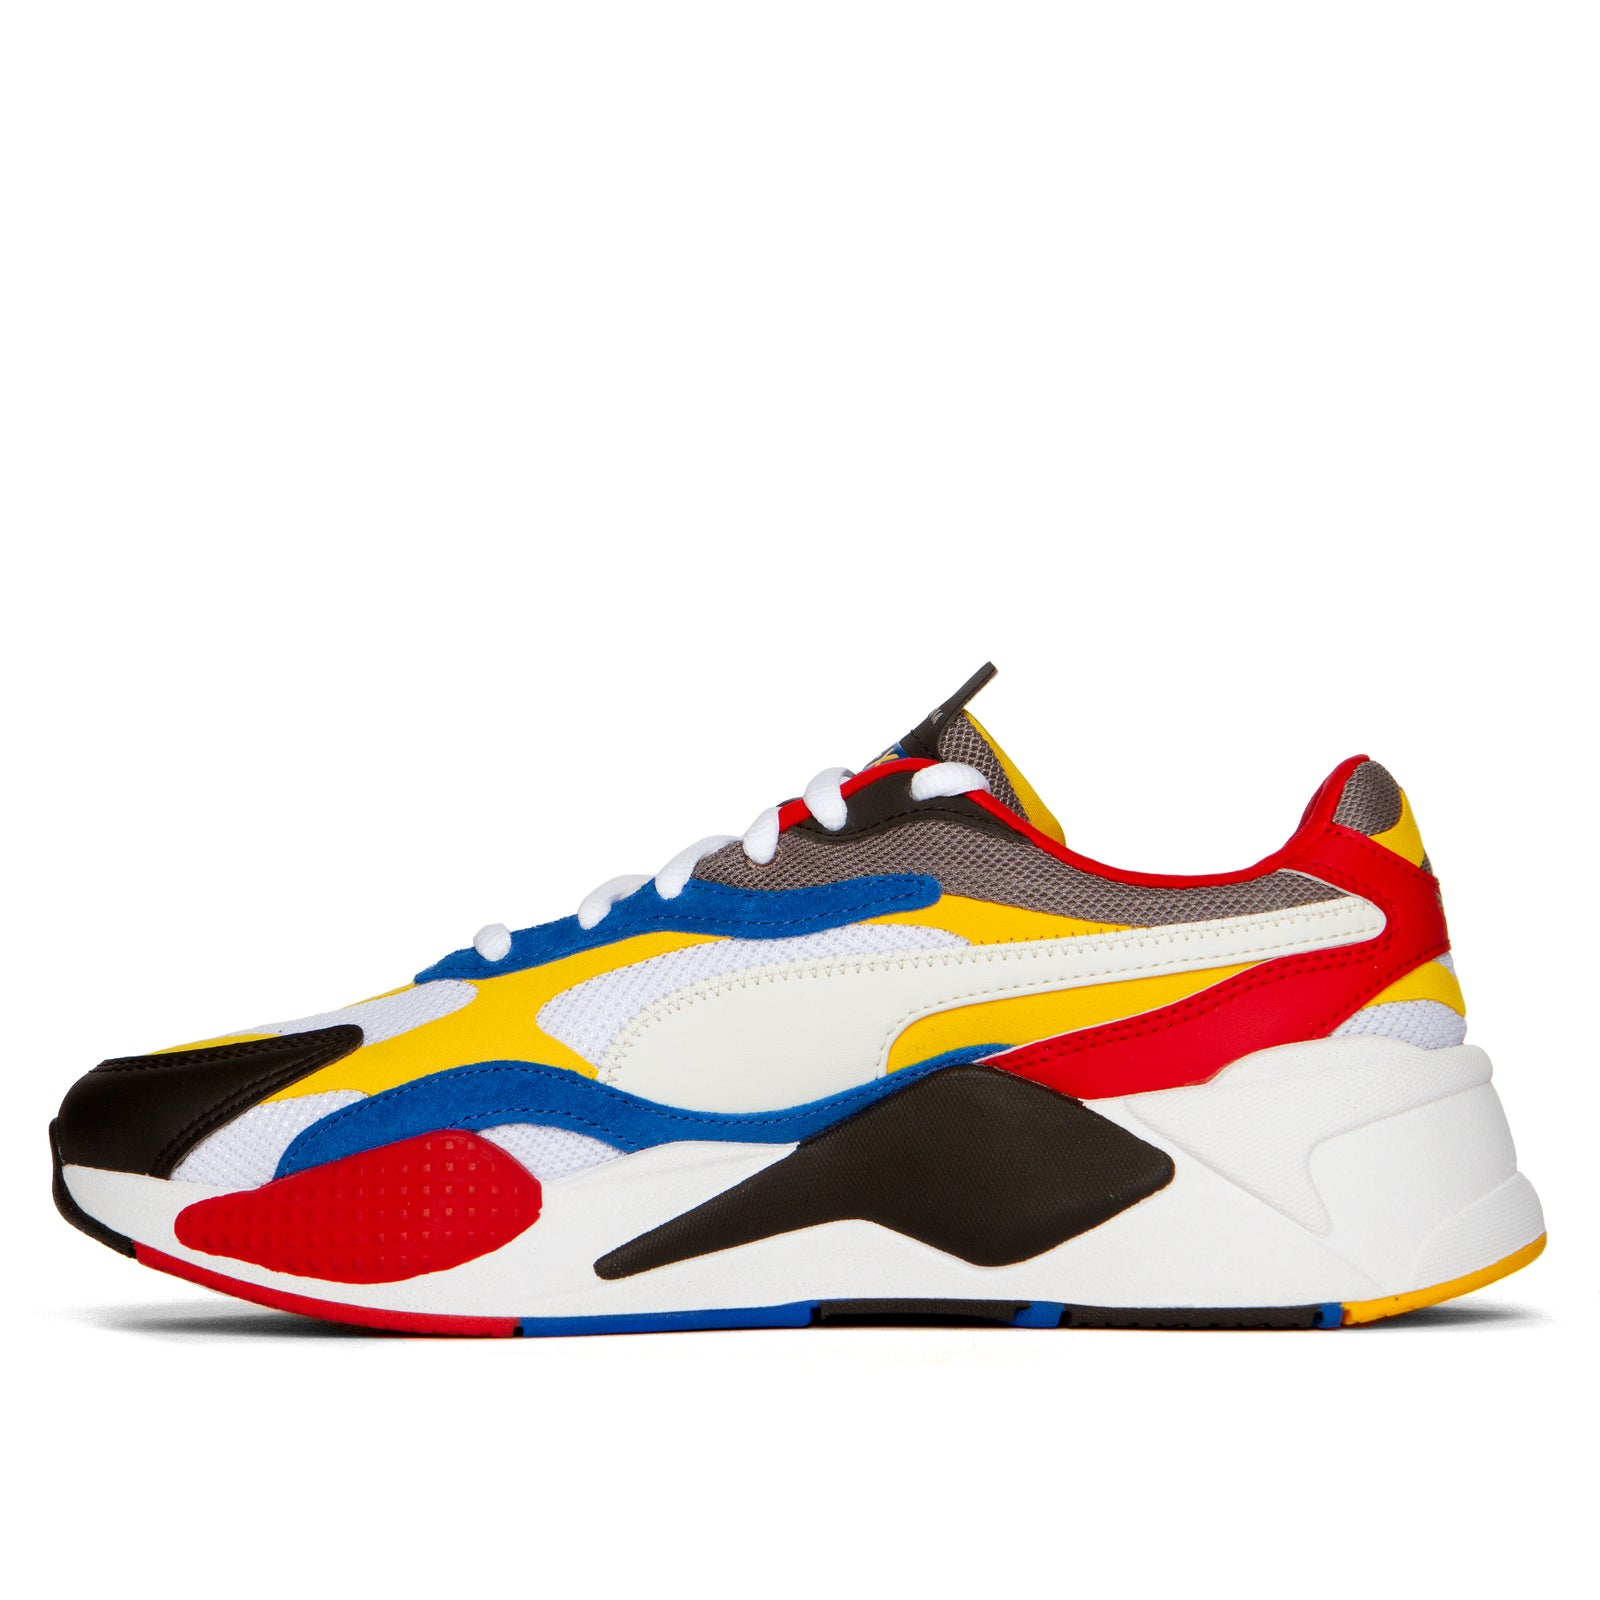 Puma RS-X3 Puzzle Men's Running Shoes